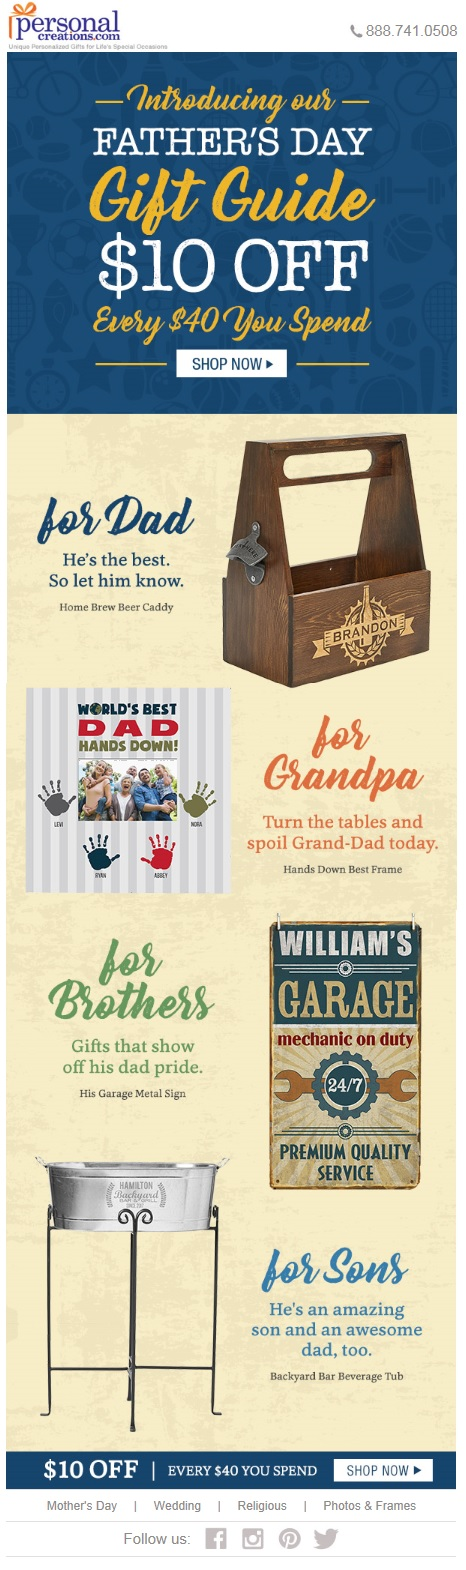 This email from PersonalCreations.com contains a $10 off offer. The merchandise focuses on Father's Day, with different products for different fathers.